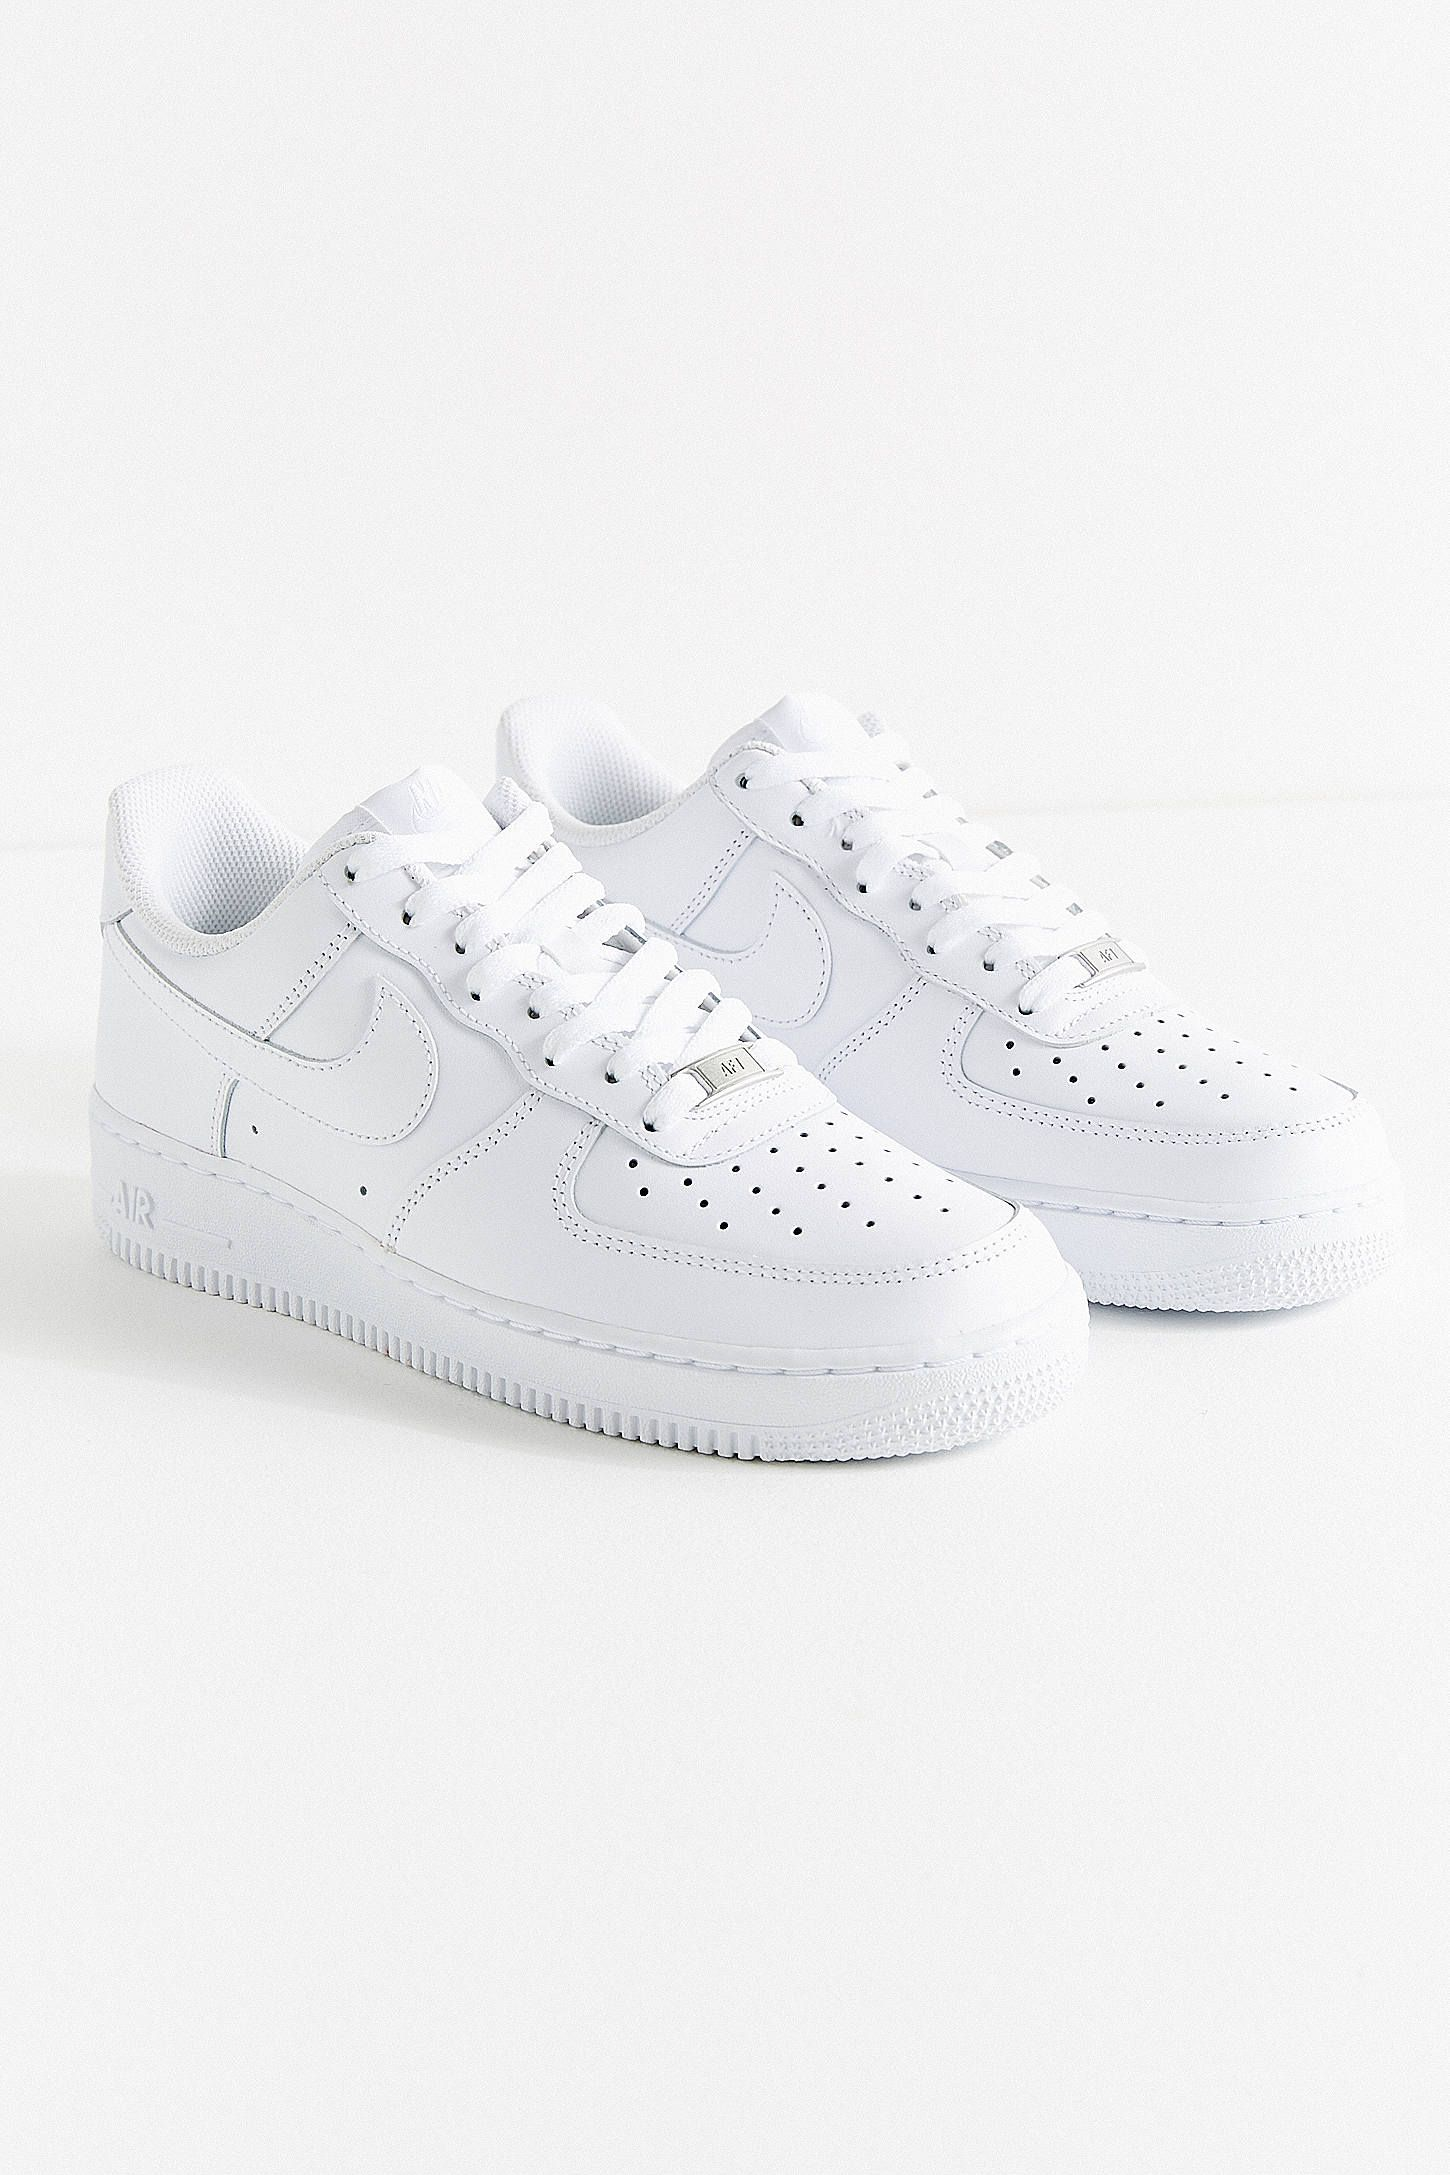 urban outfitters nike air force